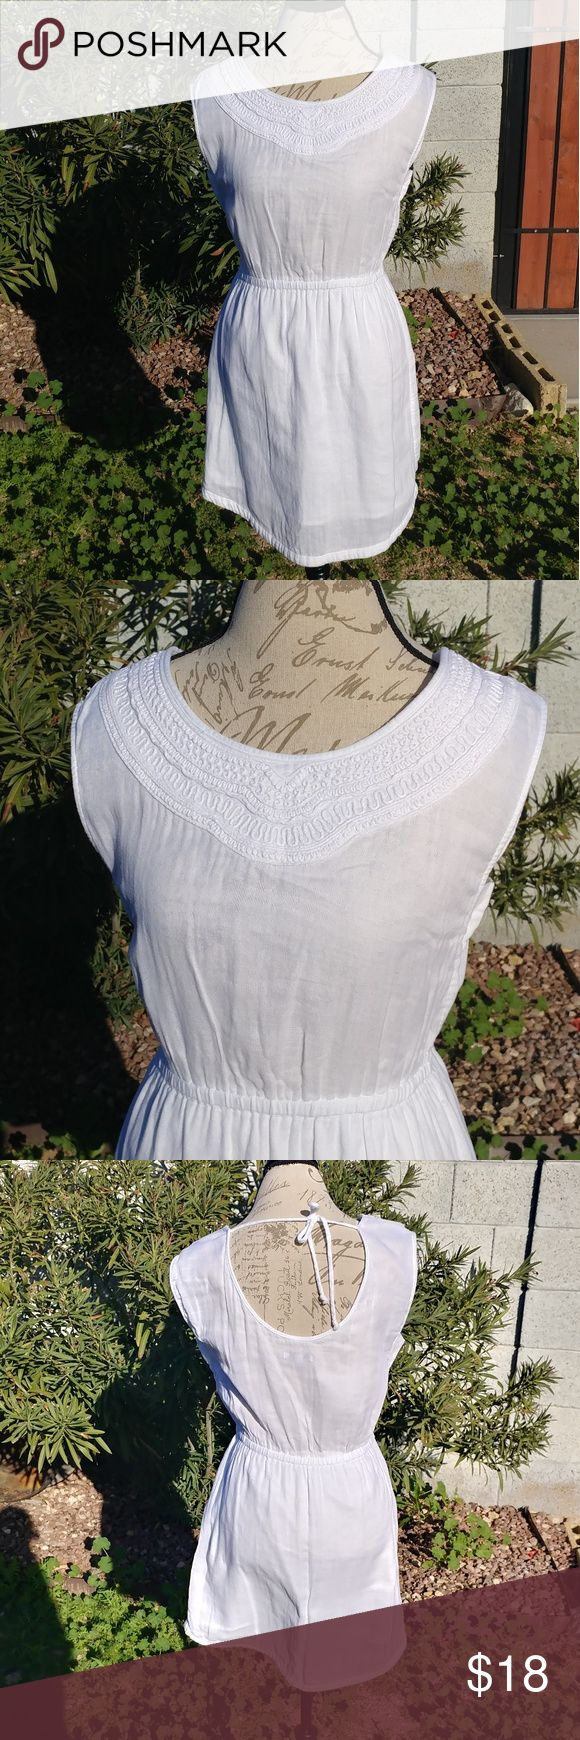 "Casual white GAP dress Very good condition.  Sleeveless, 100% cotton dress.  Measures: Waist flat 14"" (stretchy) Bust flat 17.5""  Length (the longest side) 35"" GAP Dresses Mini"